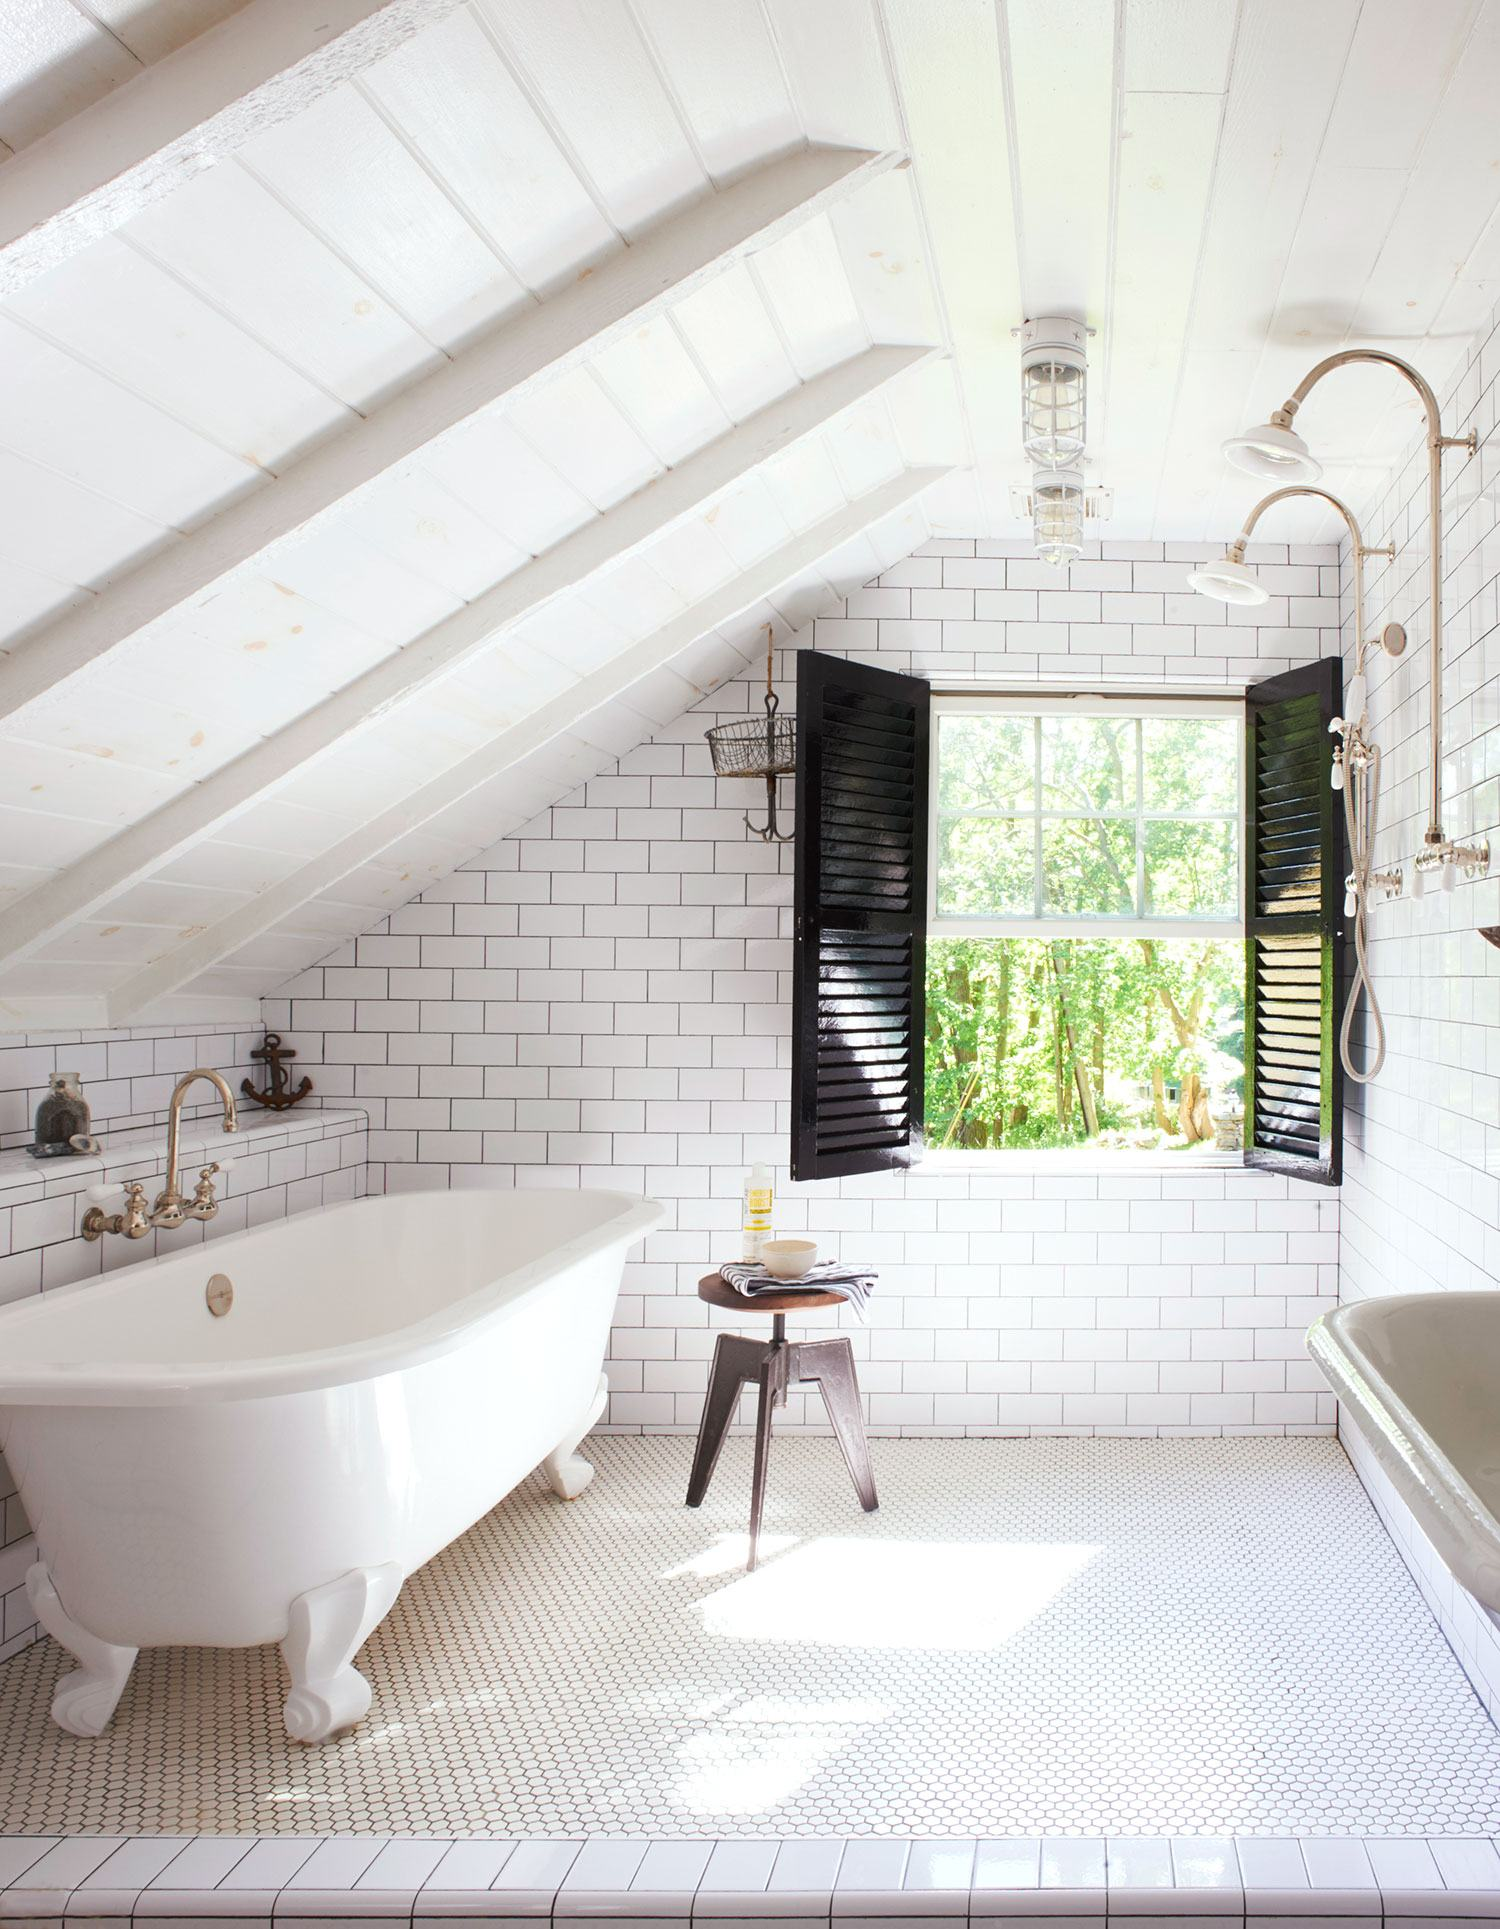 Attic Room Original Finishing and Decoration Ideas with Photos. Nice classic styled bathroom idea